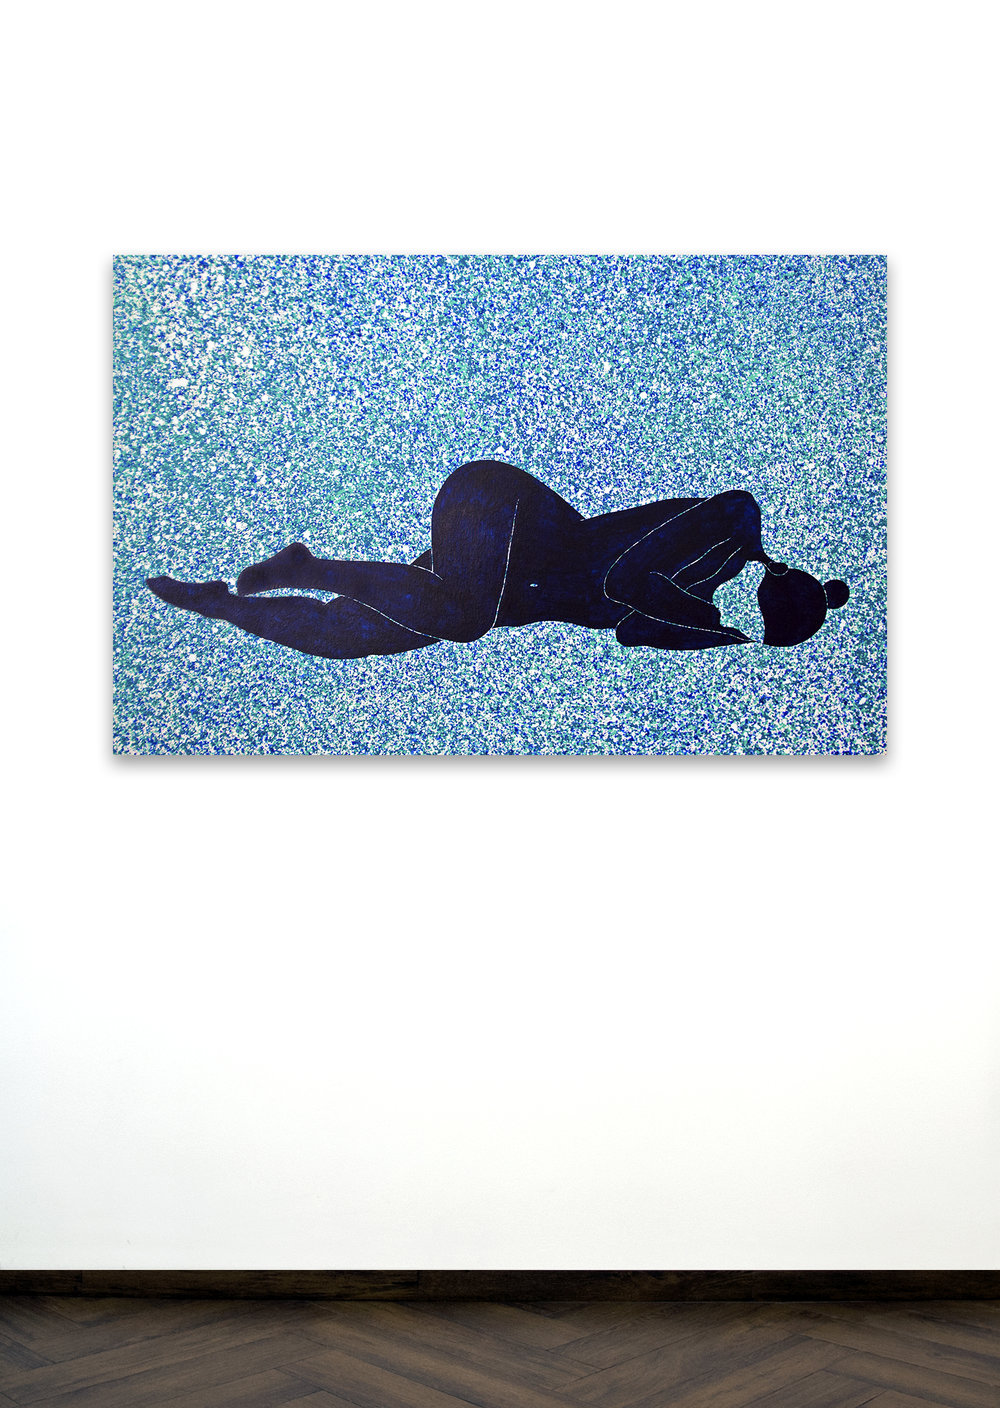 Skoya Assémat-Tessandier, Sleeping Beauty °I, 2014 90cm x 140cm, Acrylic on canvas, wooden stretchers.